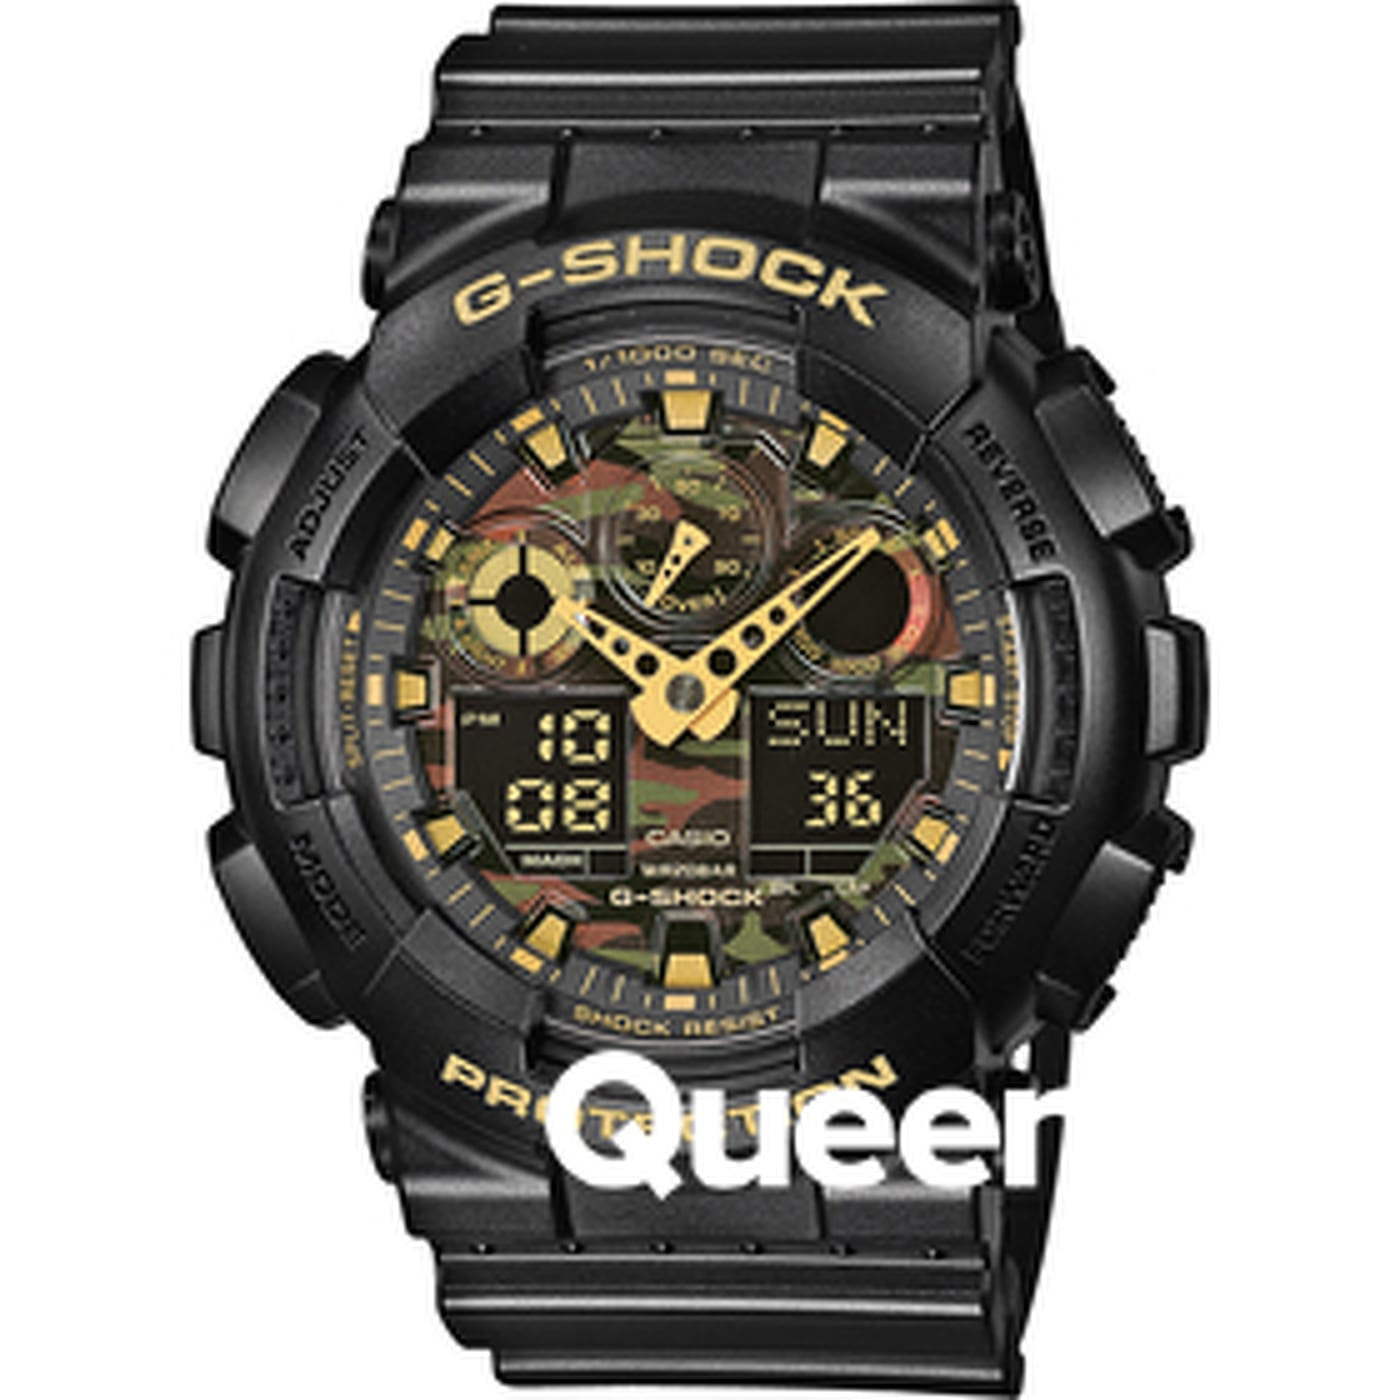 Casio G-Shock GA 100CF-1A9 black / camo